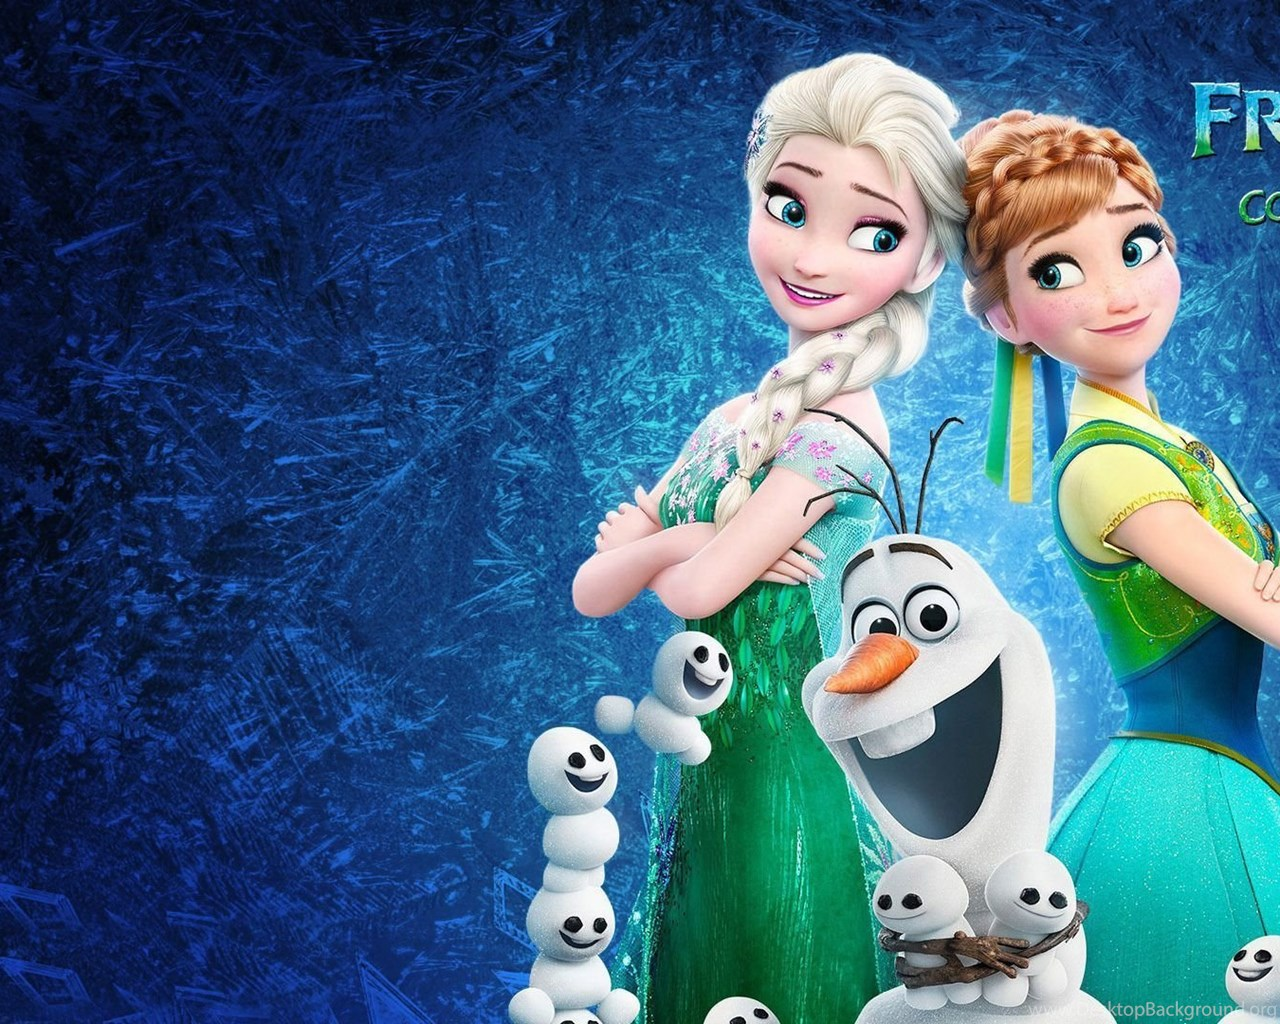 Anna elsa and olaf frozen wallpapers cartoon wallpapers - Frozen cartoon wallpaper ...